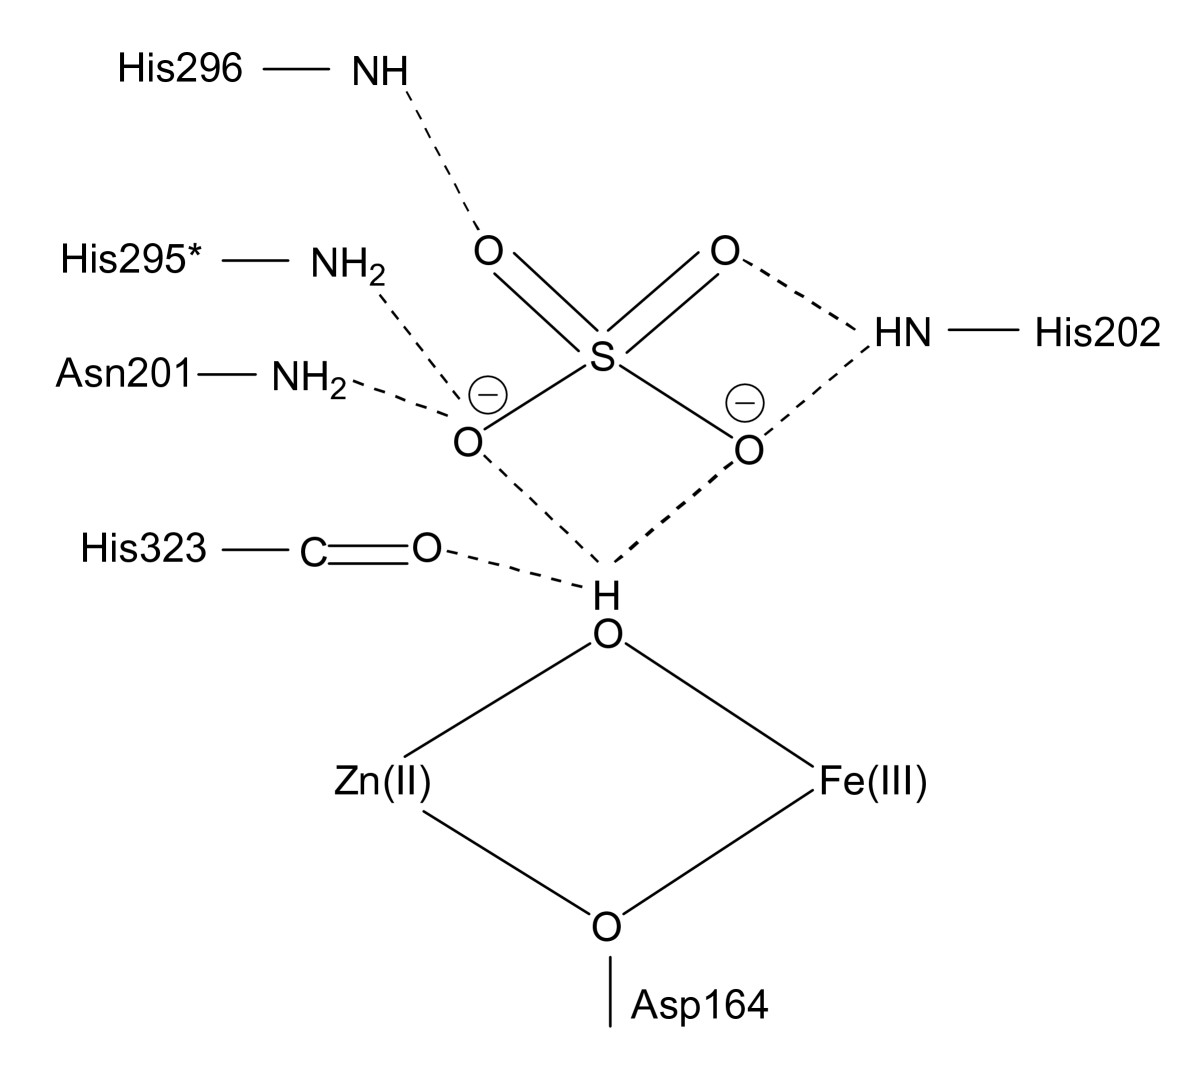 http://static-content.springer.com/image/art%3A10.1186%2F1472-6807-8-6/MediaObjects/12900_2007_Article_171_Fig3_HTML.jpg